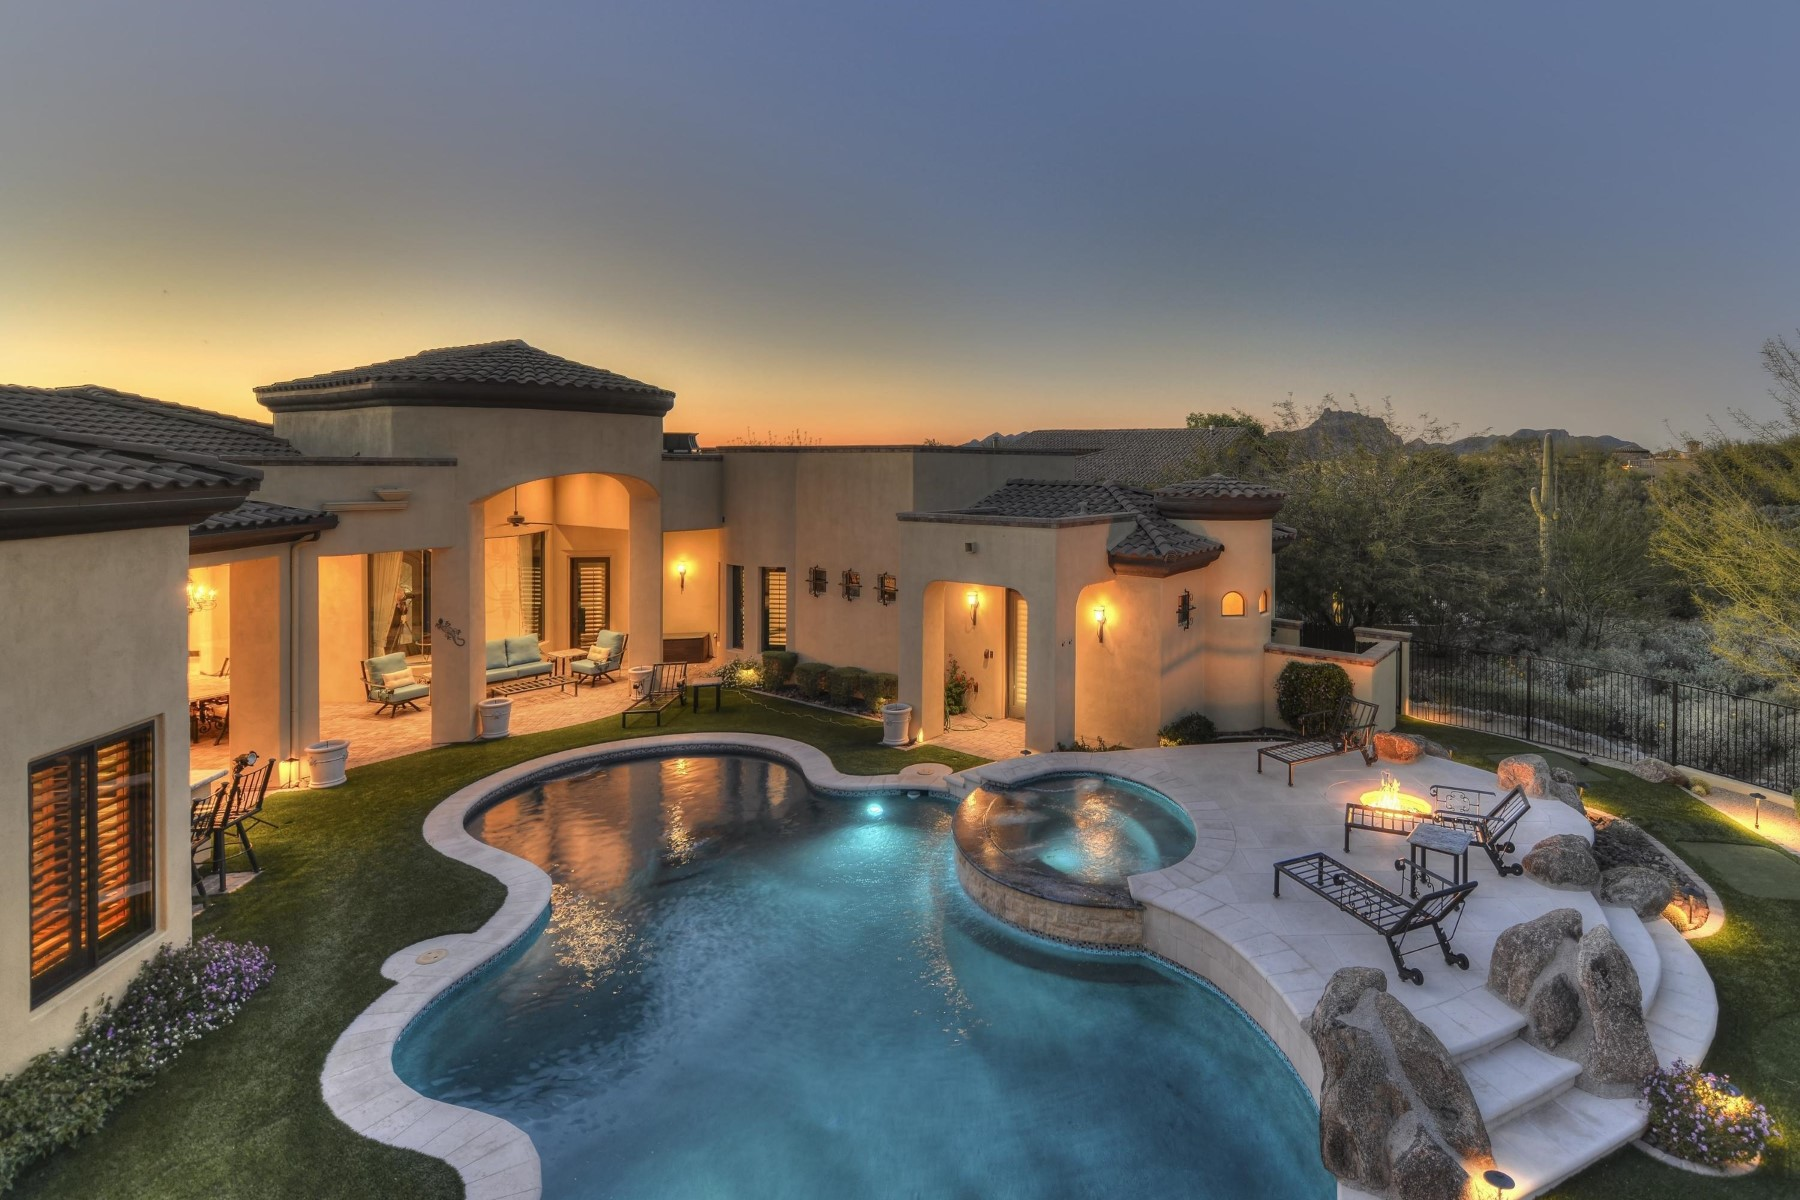 Maison unifamiliale pour l Vente à One-of-a Kind Golf Course Home with Stunning Finishes 3951 N Pinnacle Hills Circle Mesa, Arizona, 85207 États-Unis